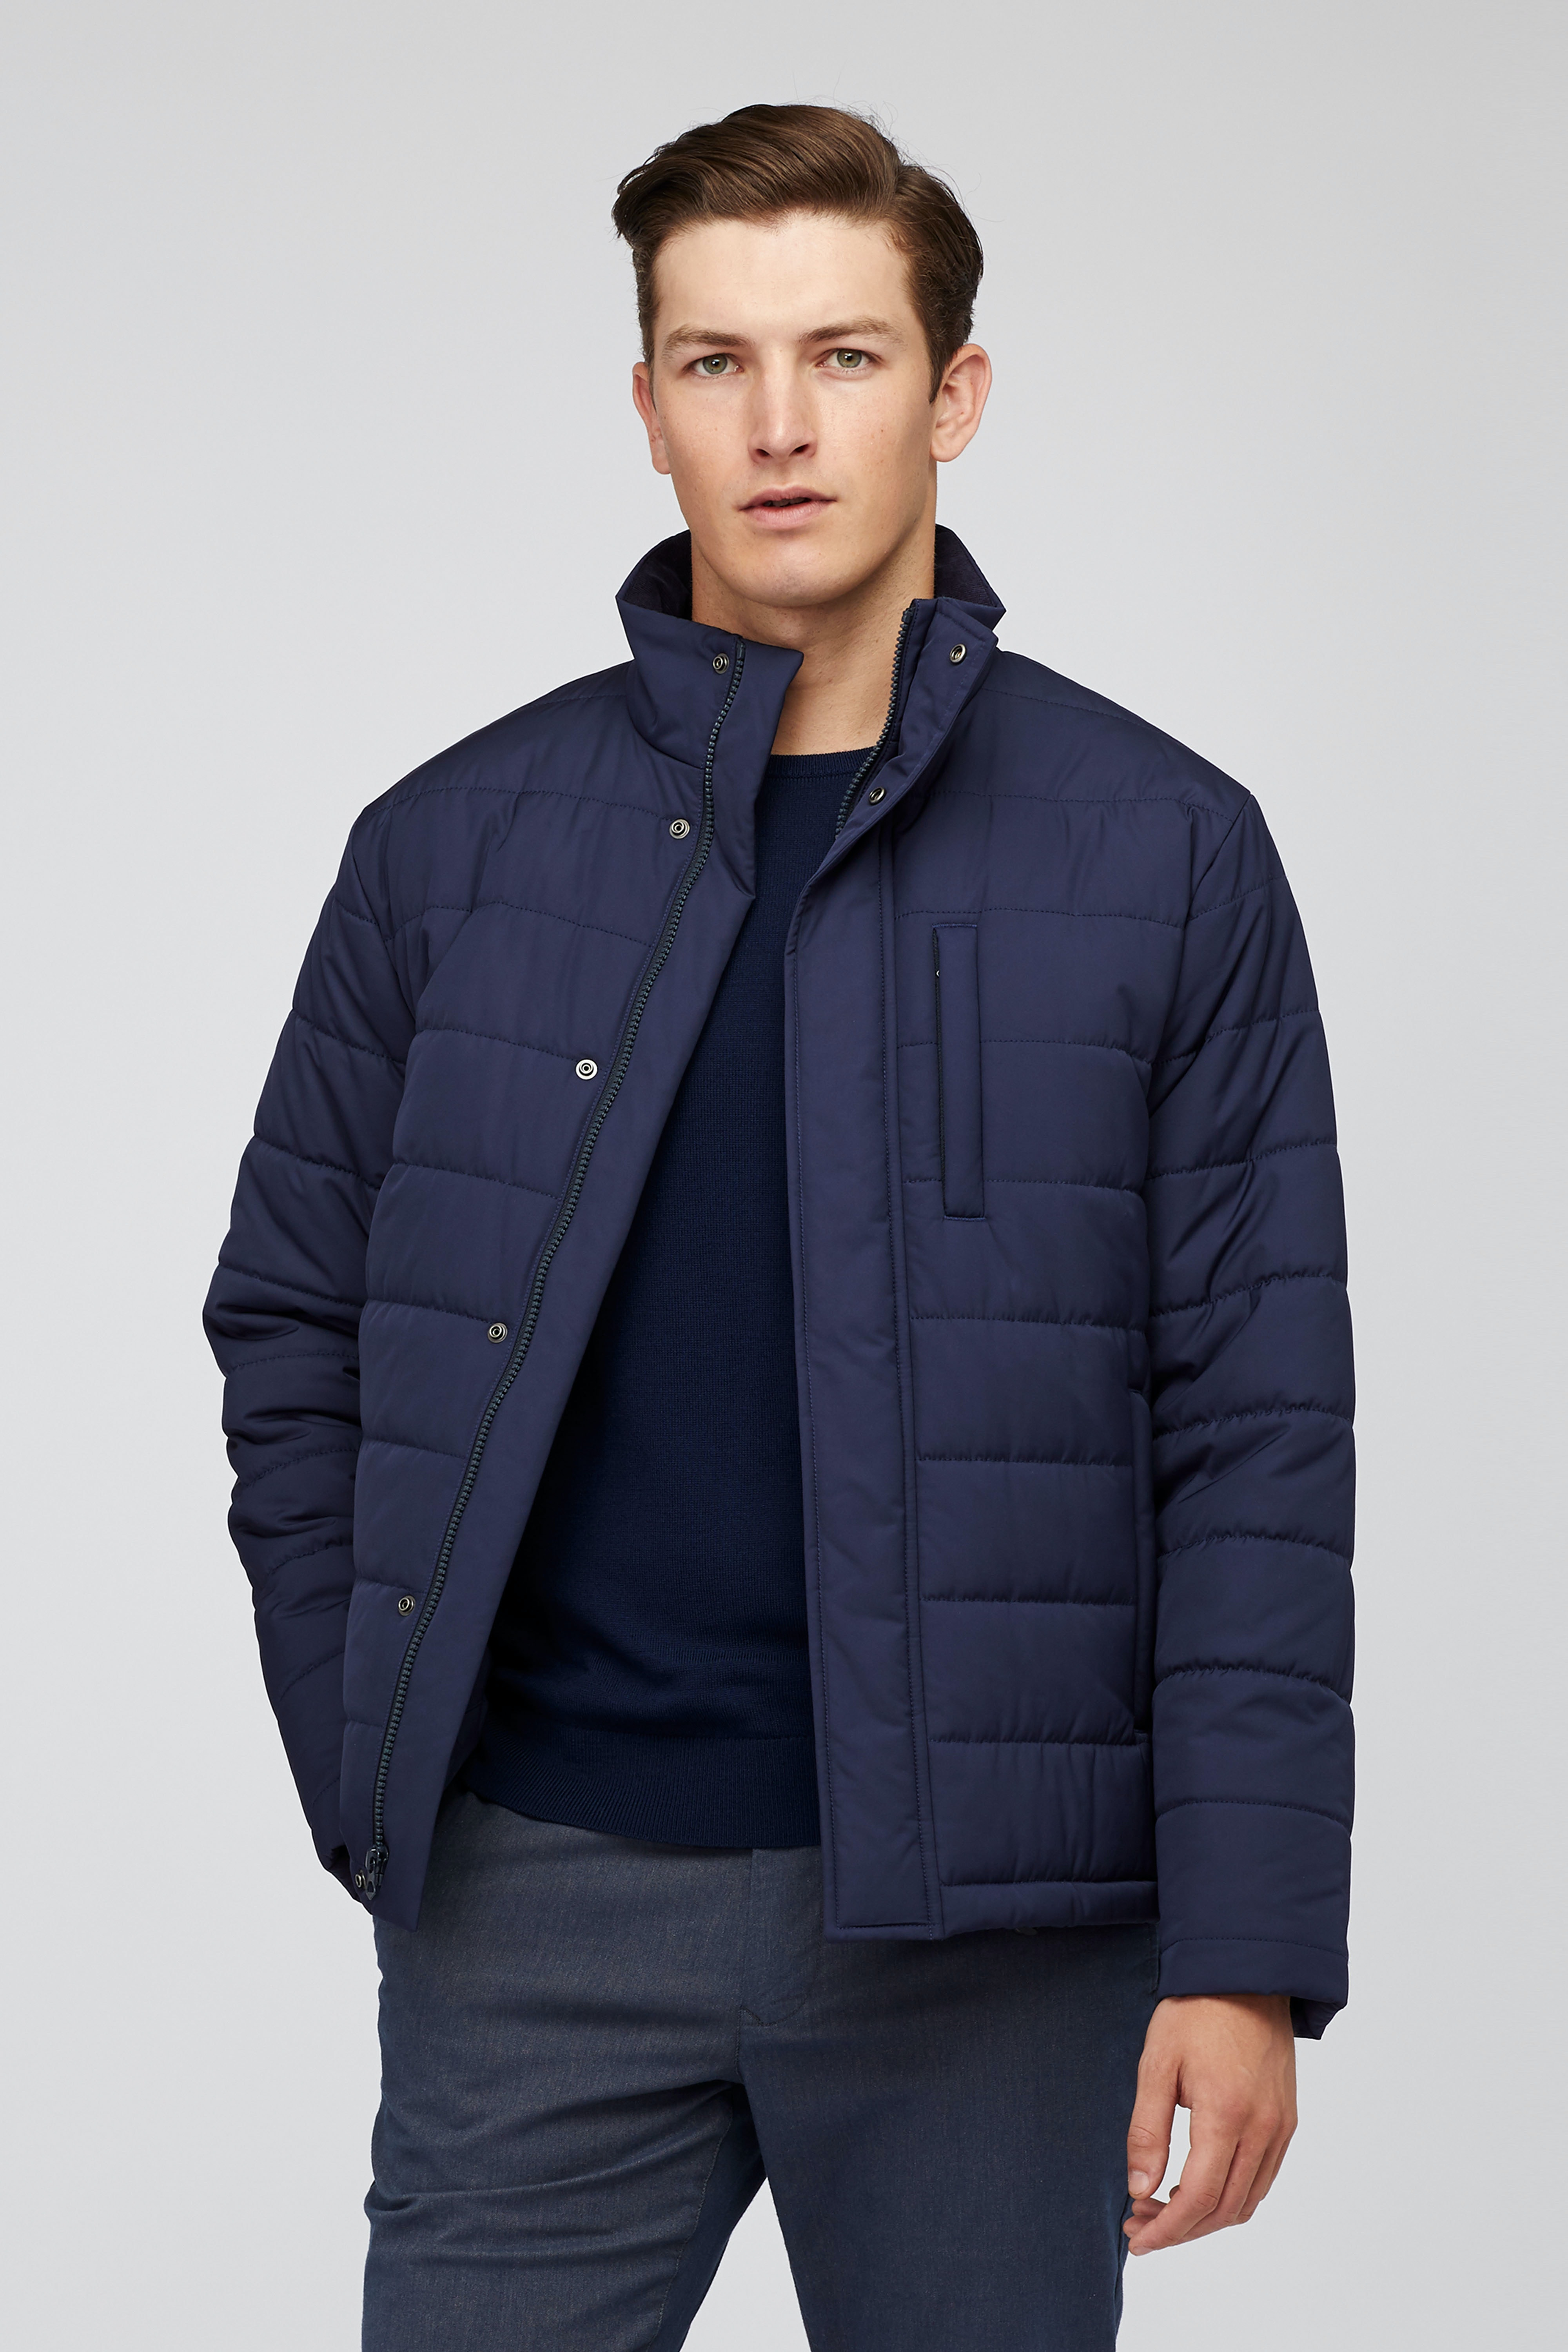 The Channel Quilted Jacket